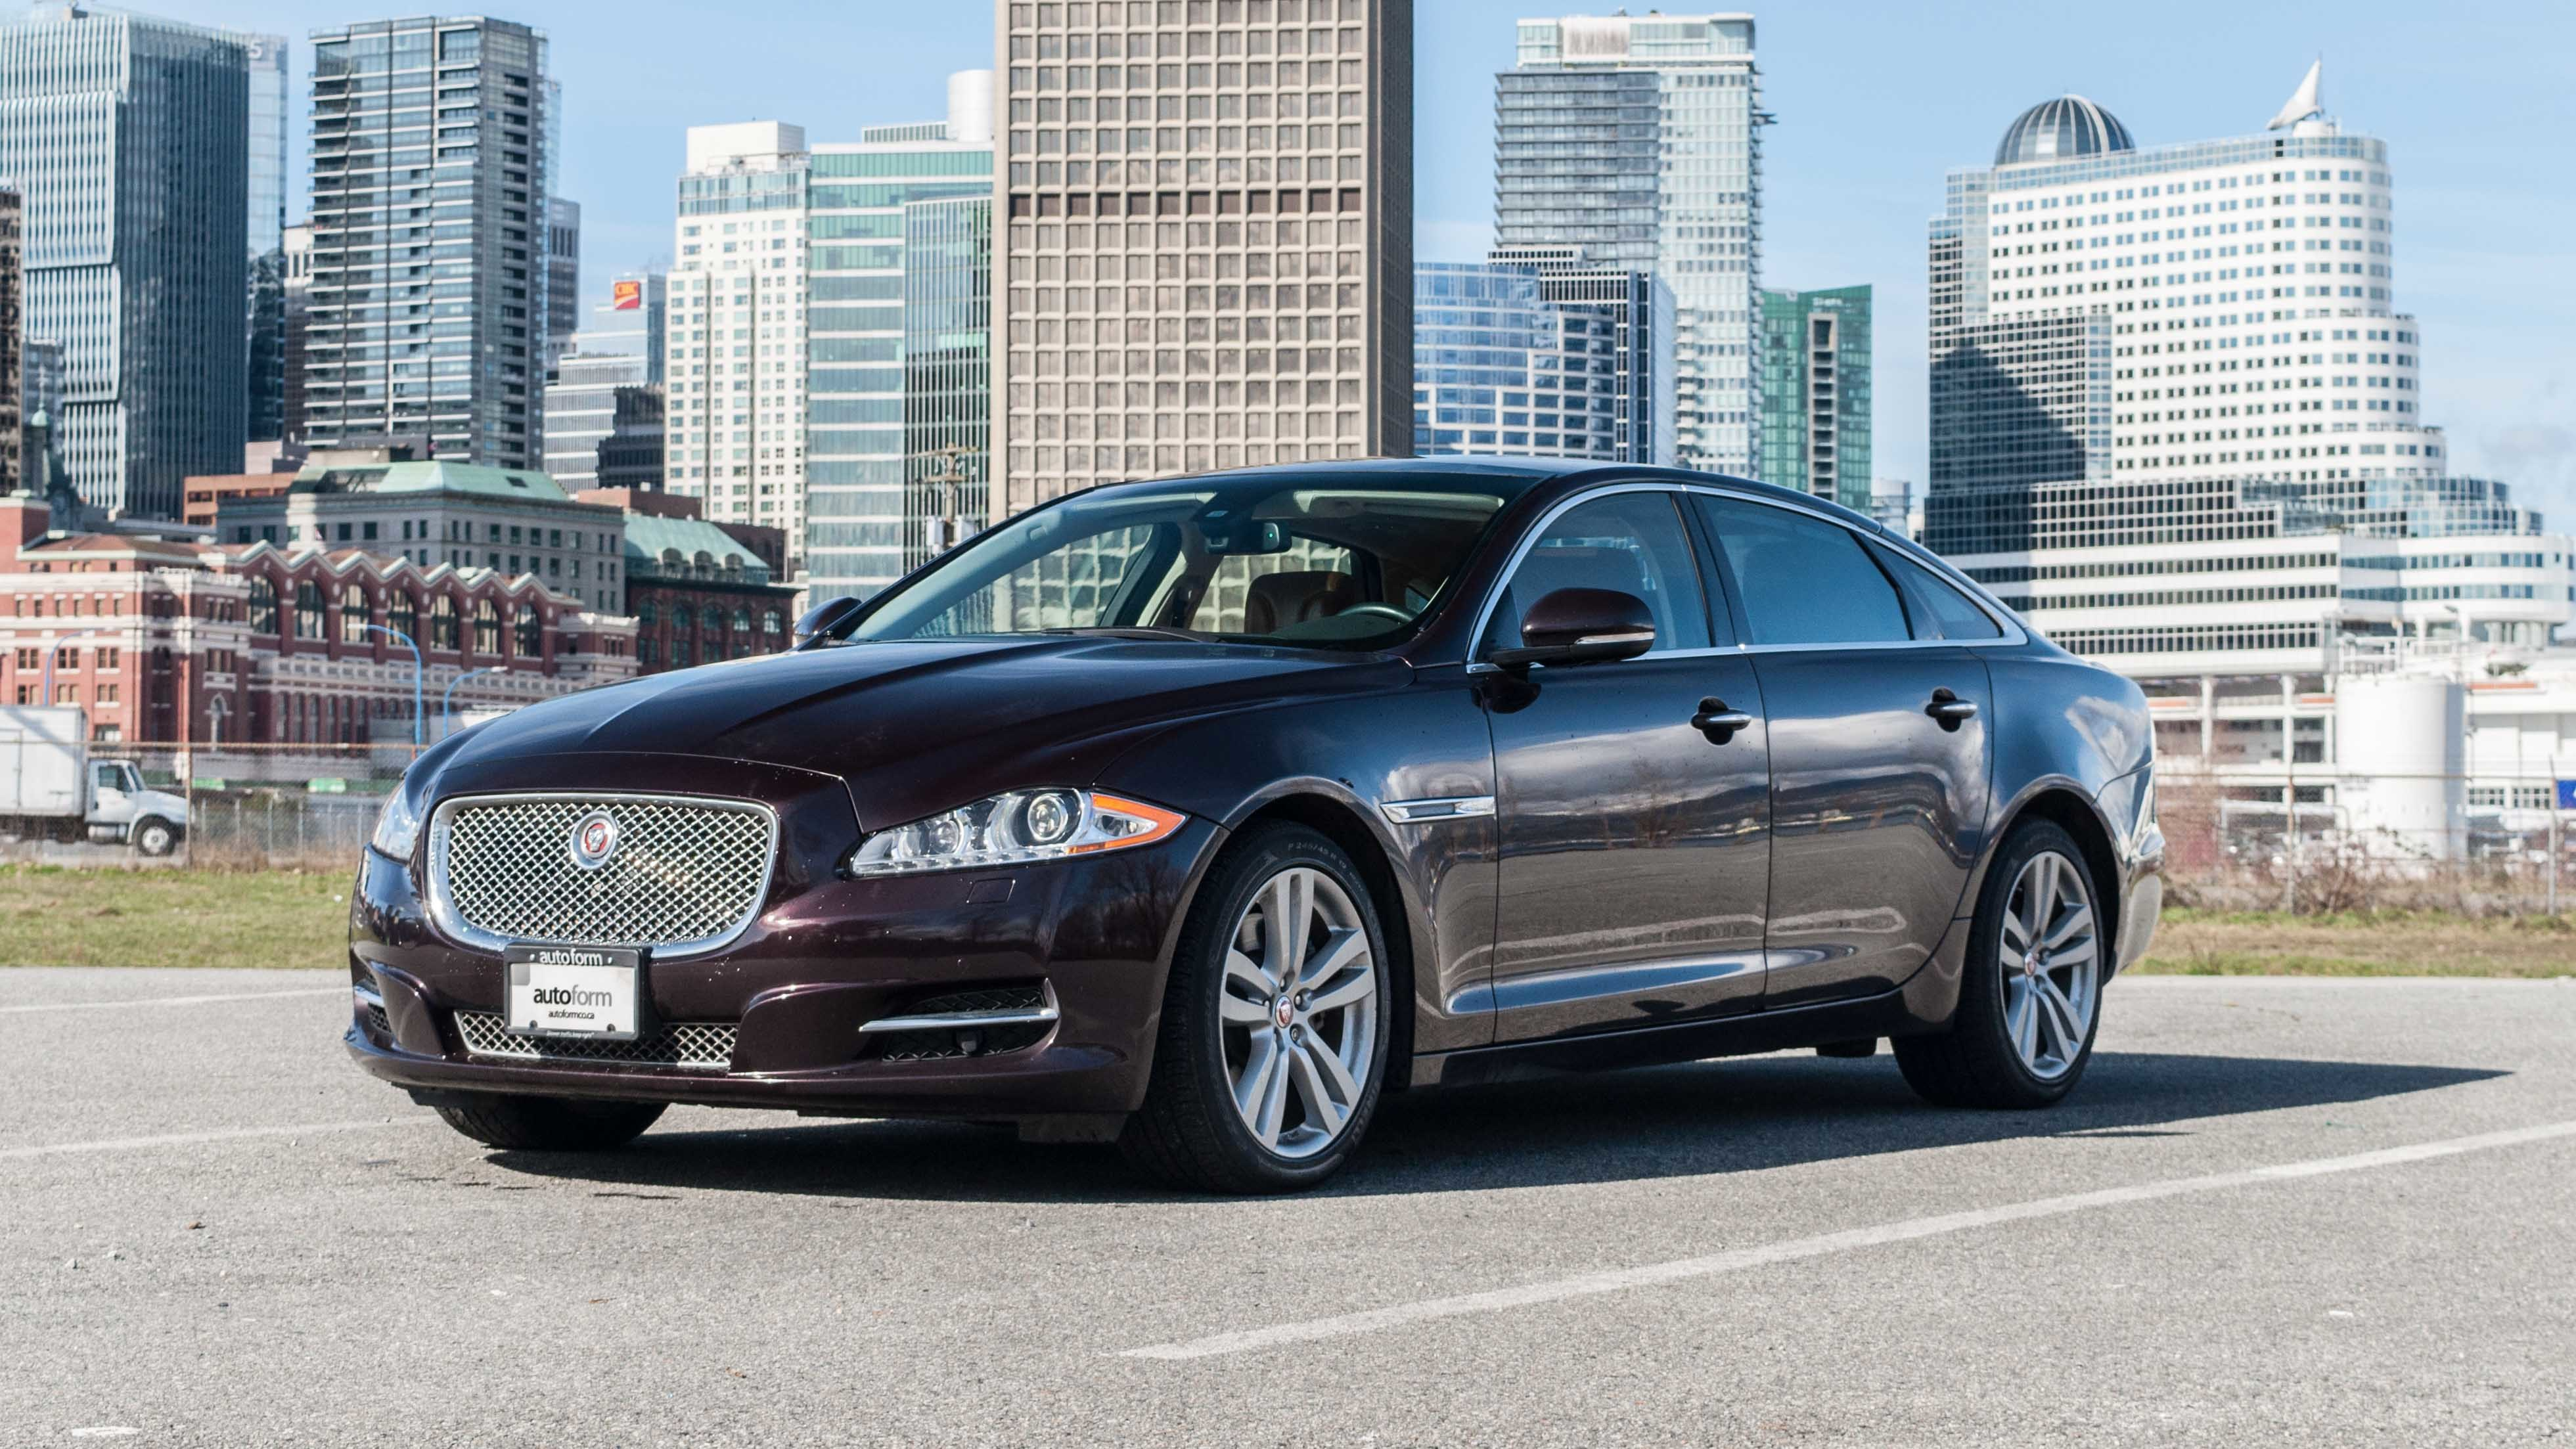 ratings xke news xk jaguar amazing with msrp images reviews